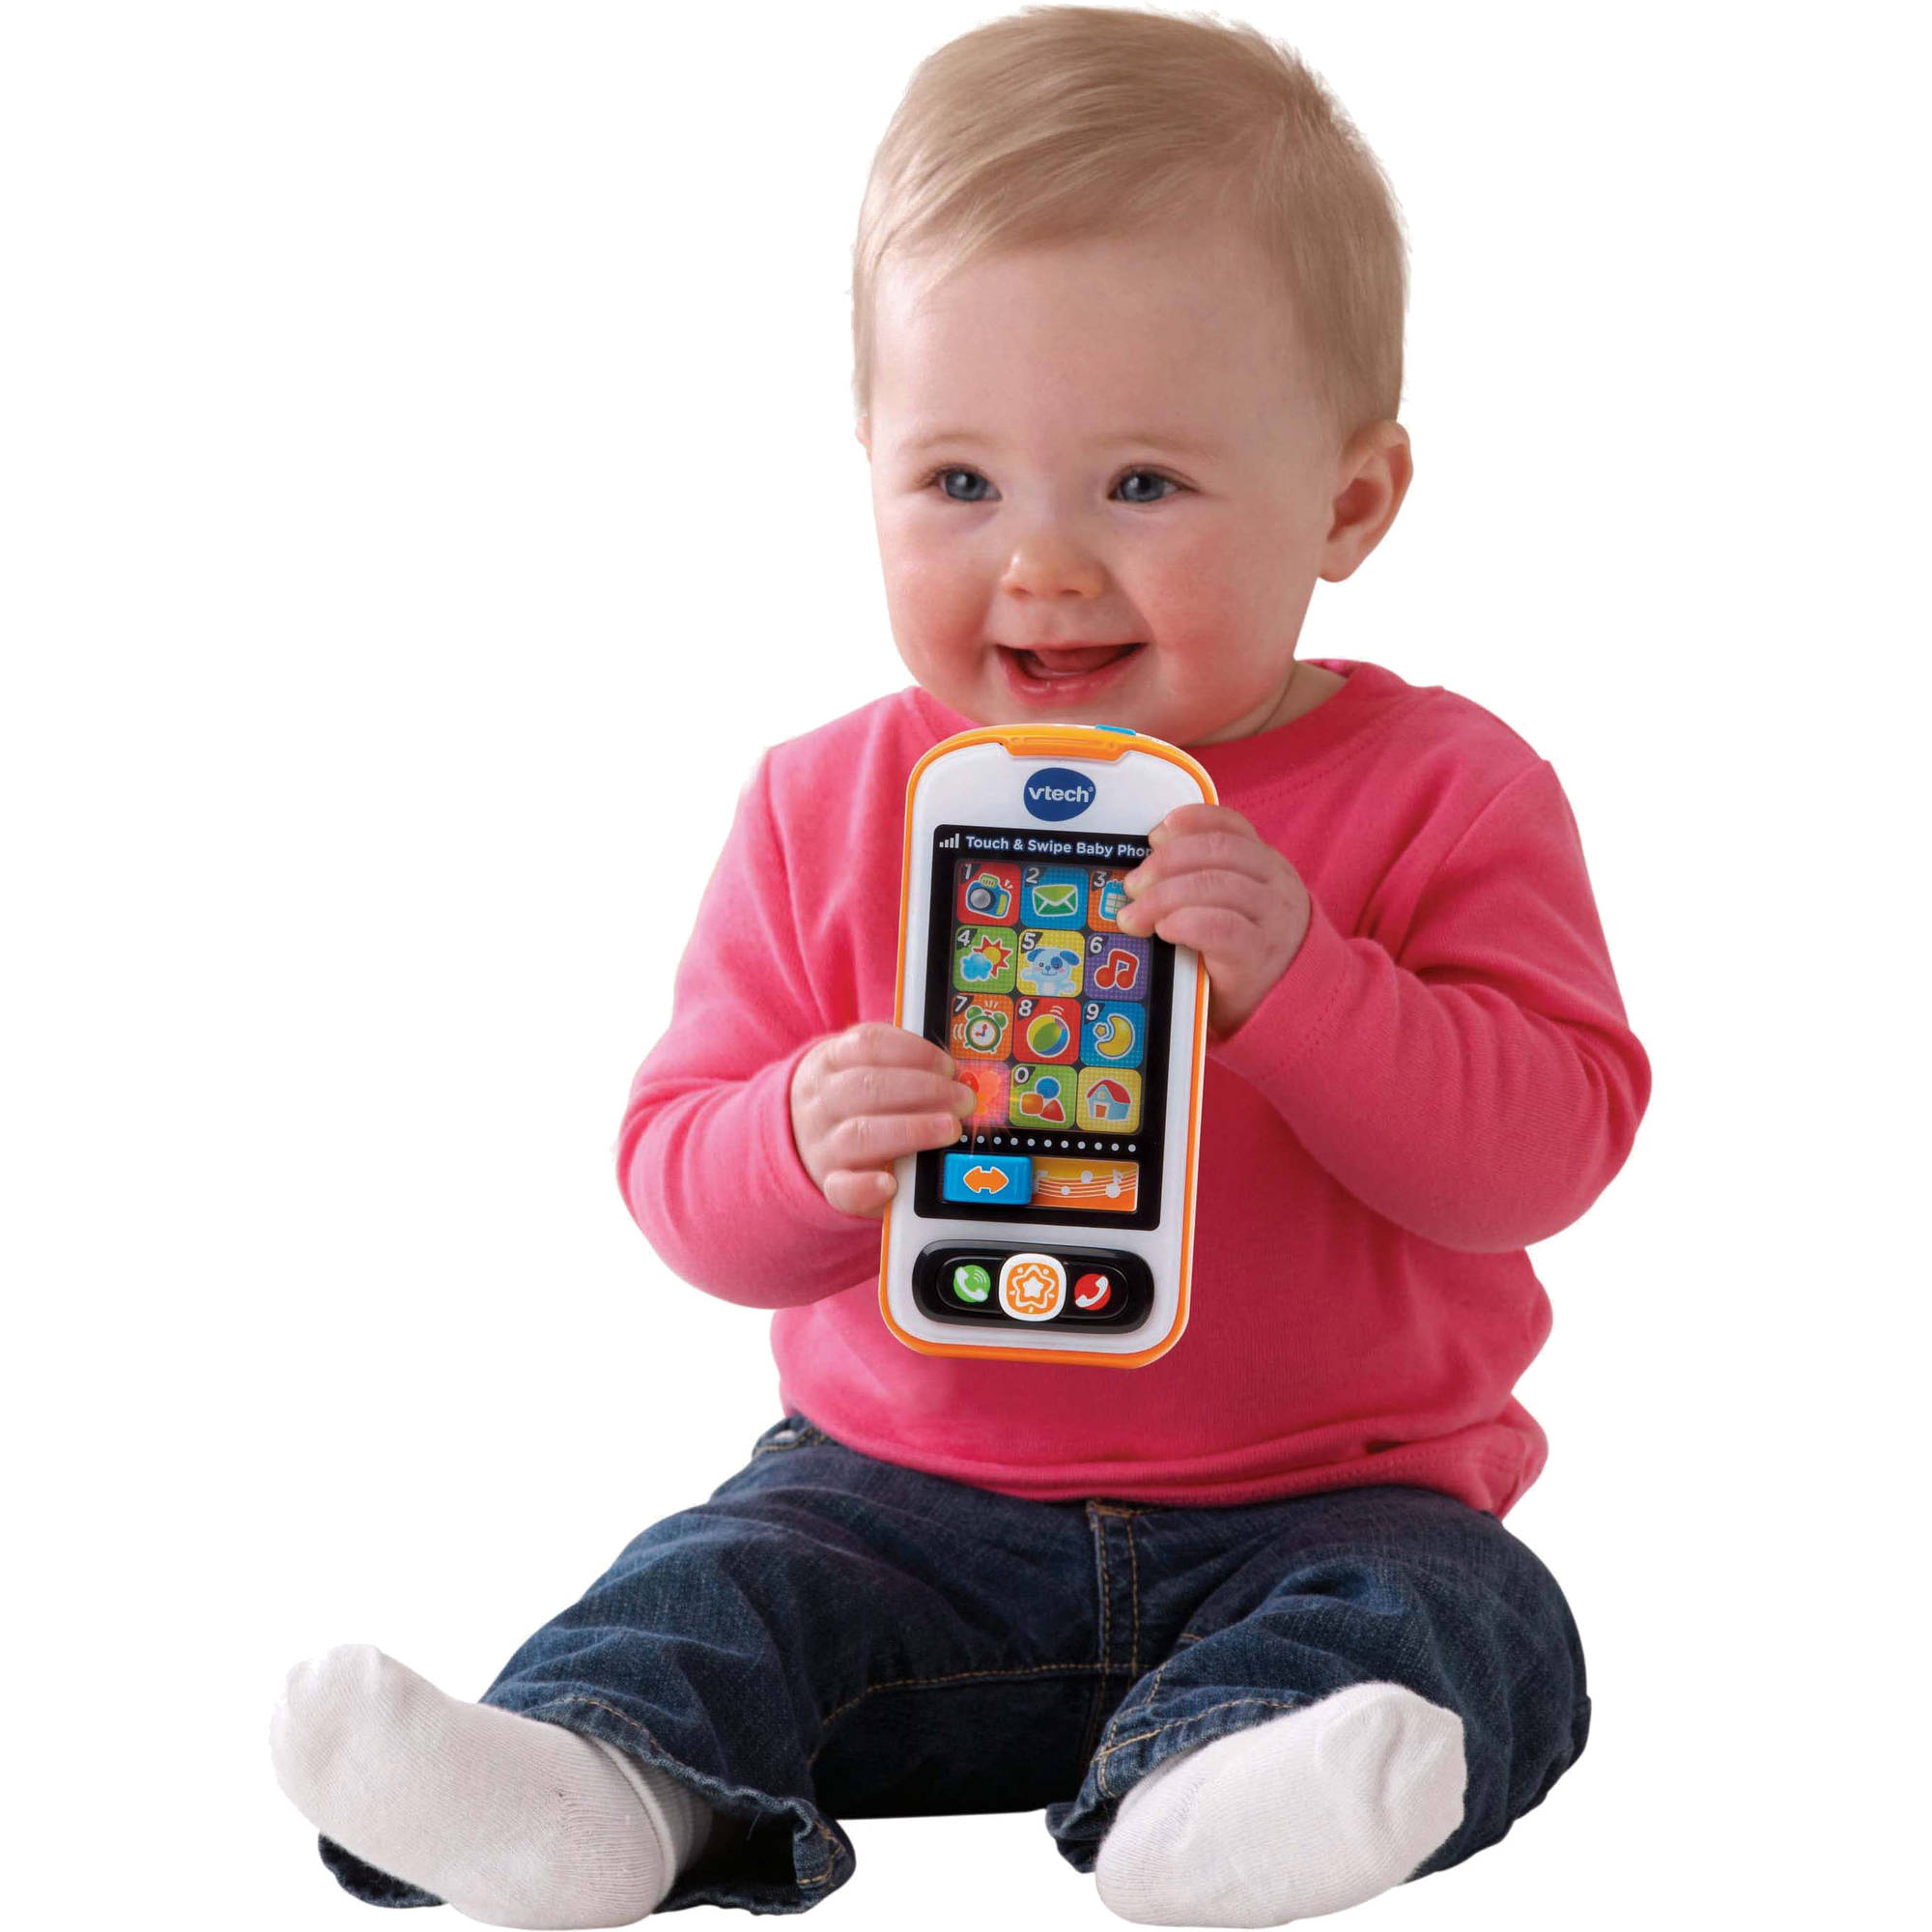 VTech Touch and Swipe Baby Phone, Multi-Color